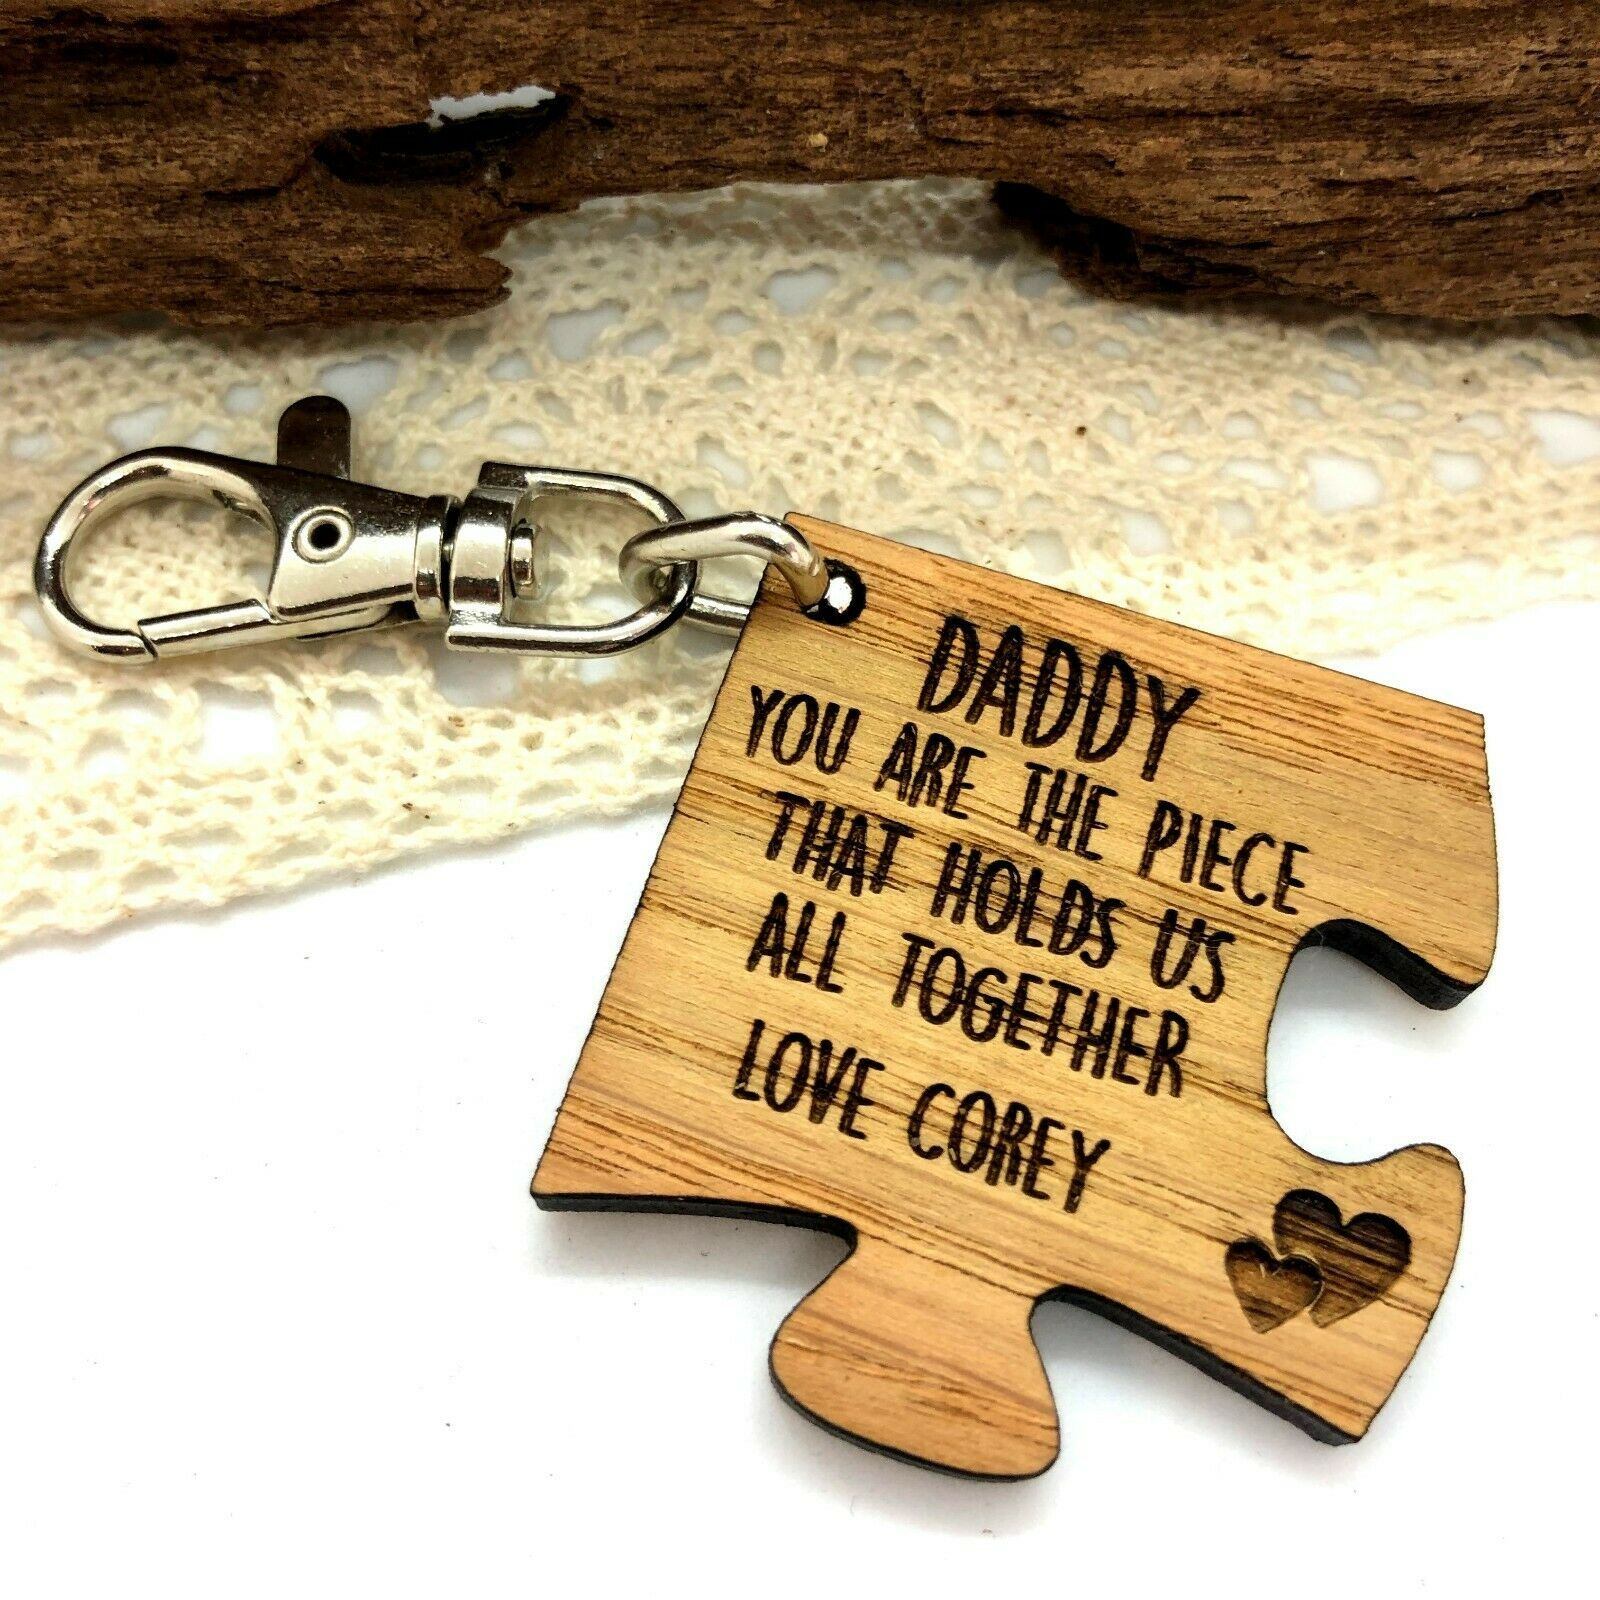 Little Gifts With Love - Personalised Wooden Daddy, You Are The Piece That Hold Us Together Keyring Gift